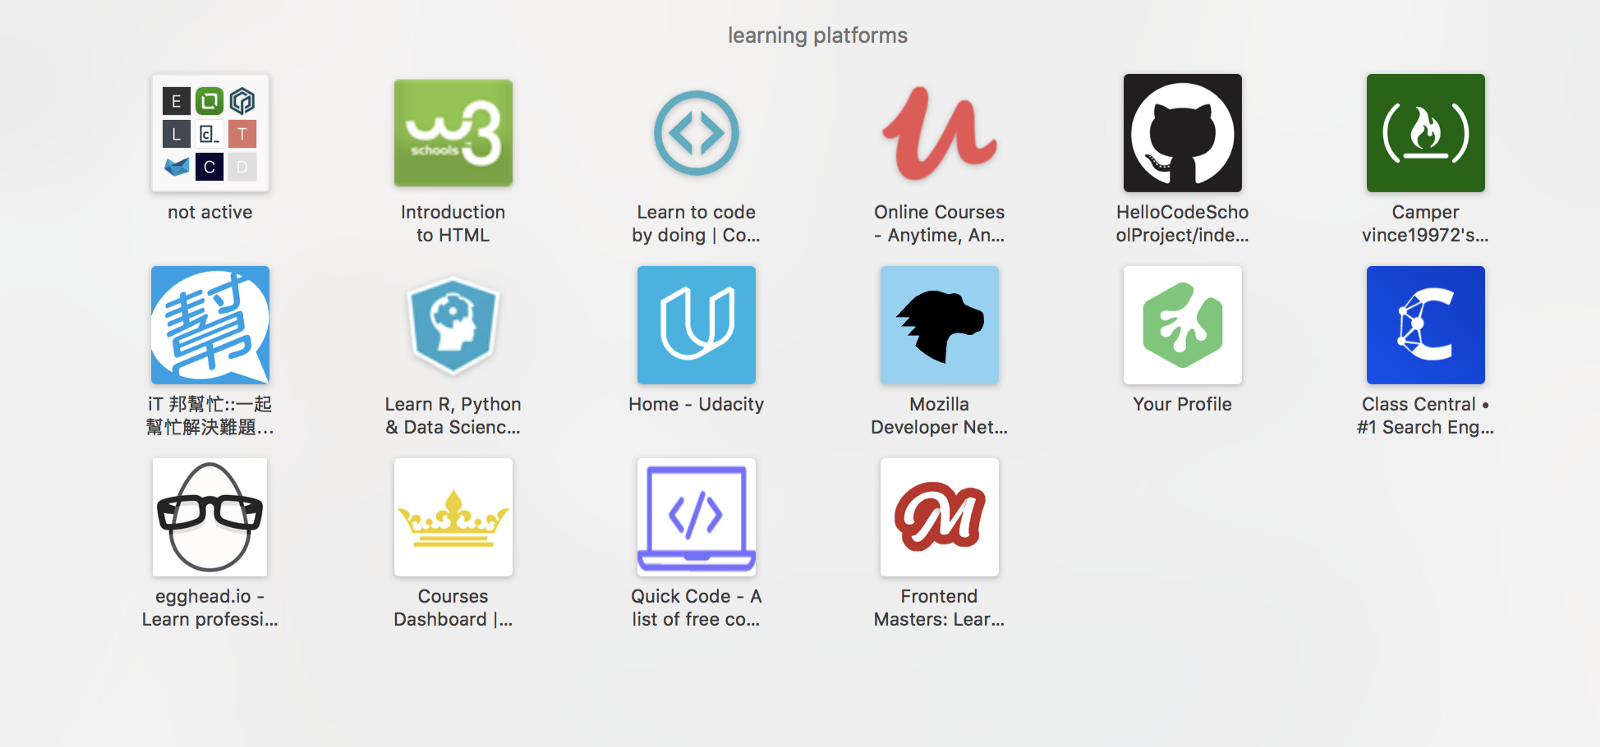 My bookmarks of learning platforms in Safari